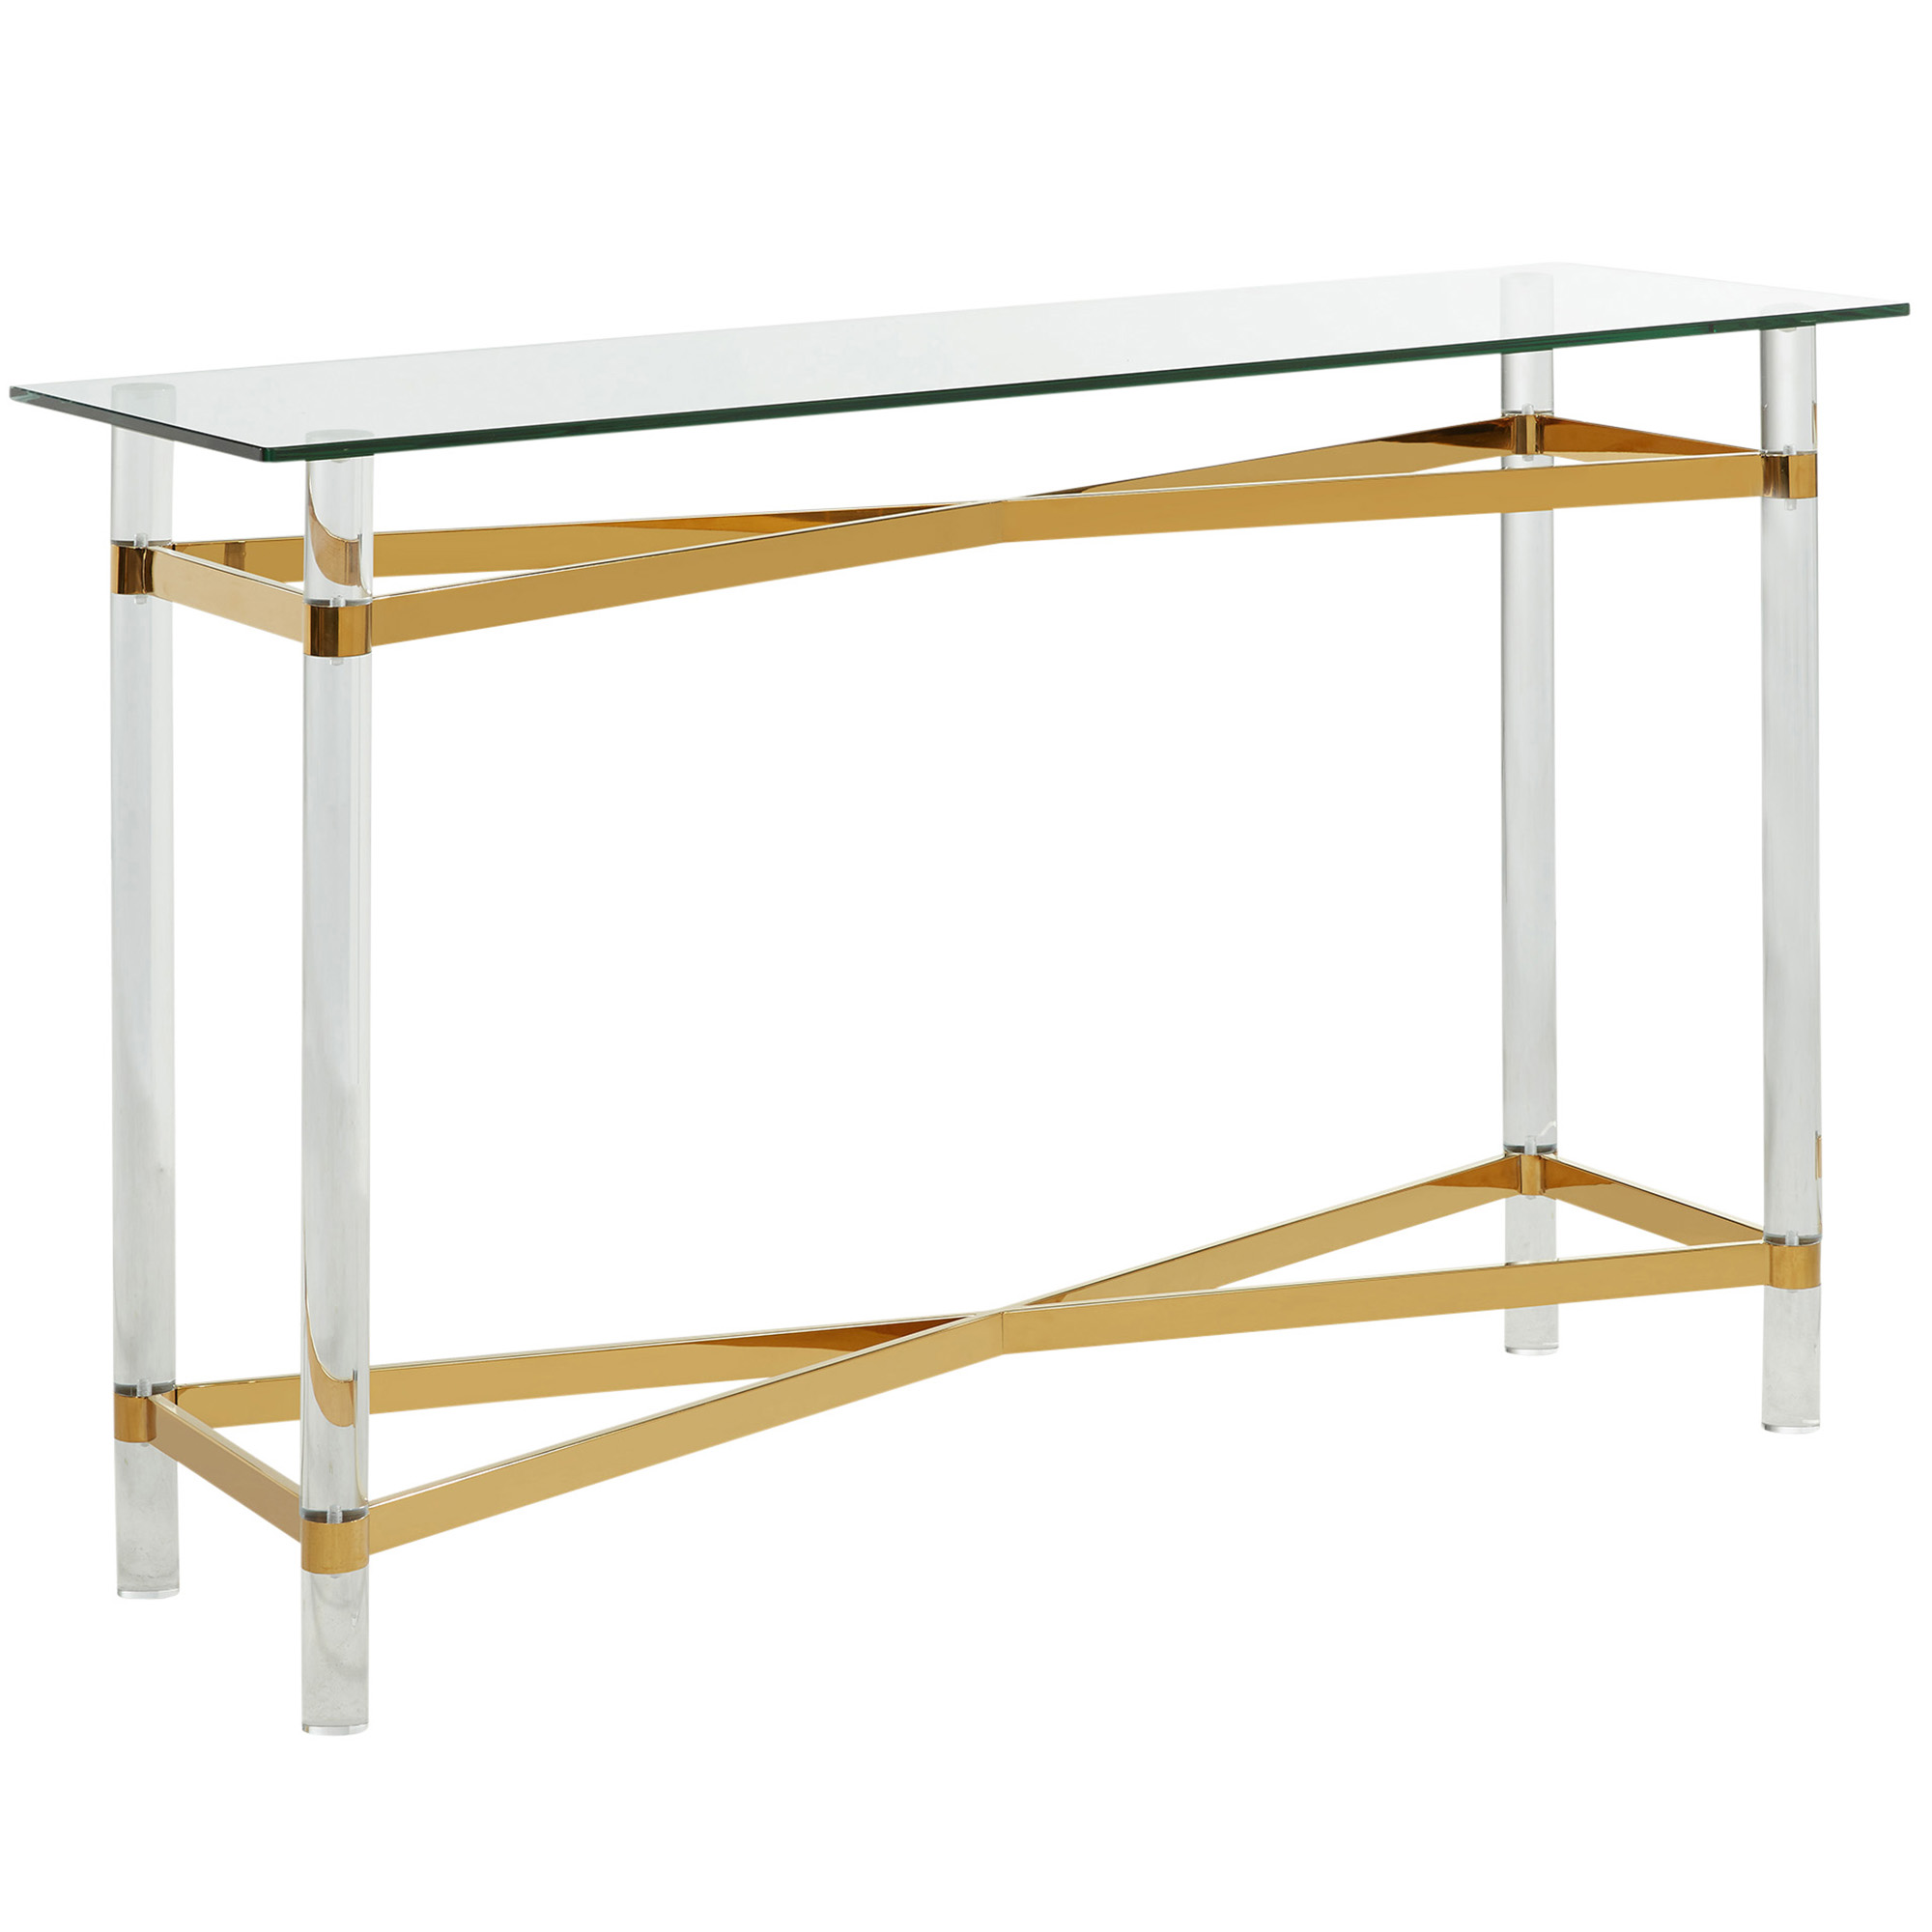 MORELIA-CONSOLE TABLE-GOLD, 841173026578, Console Table by Midha Furniture to Brampton, Mississauga, Etobicoke, Toronto, Scraborough, Caledon, Oakville, Markham, Ajax, Pickering, Oshawa, Richmondhill, Kitchener, Hamilton and GTA area